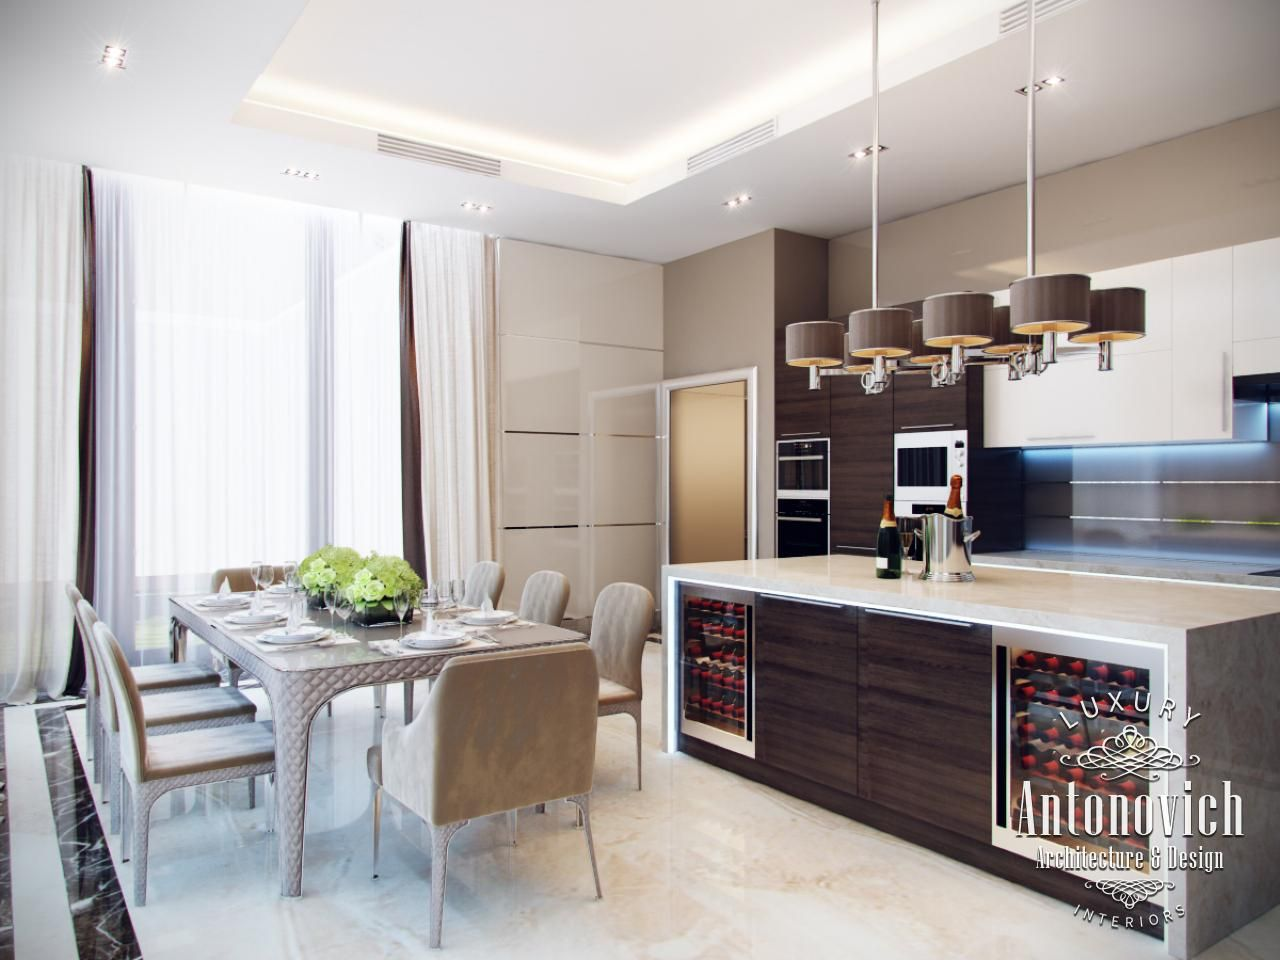 kitchen design in dubai, kitchen in style minimalism, photo 1